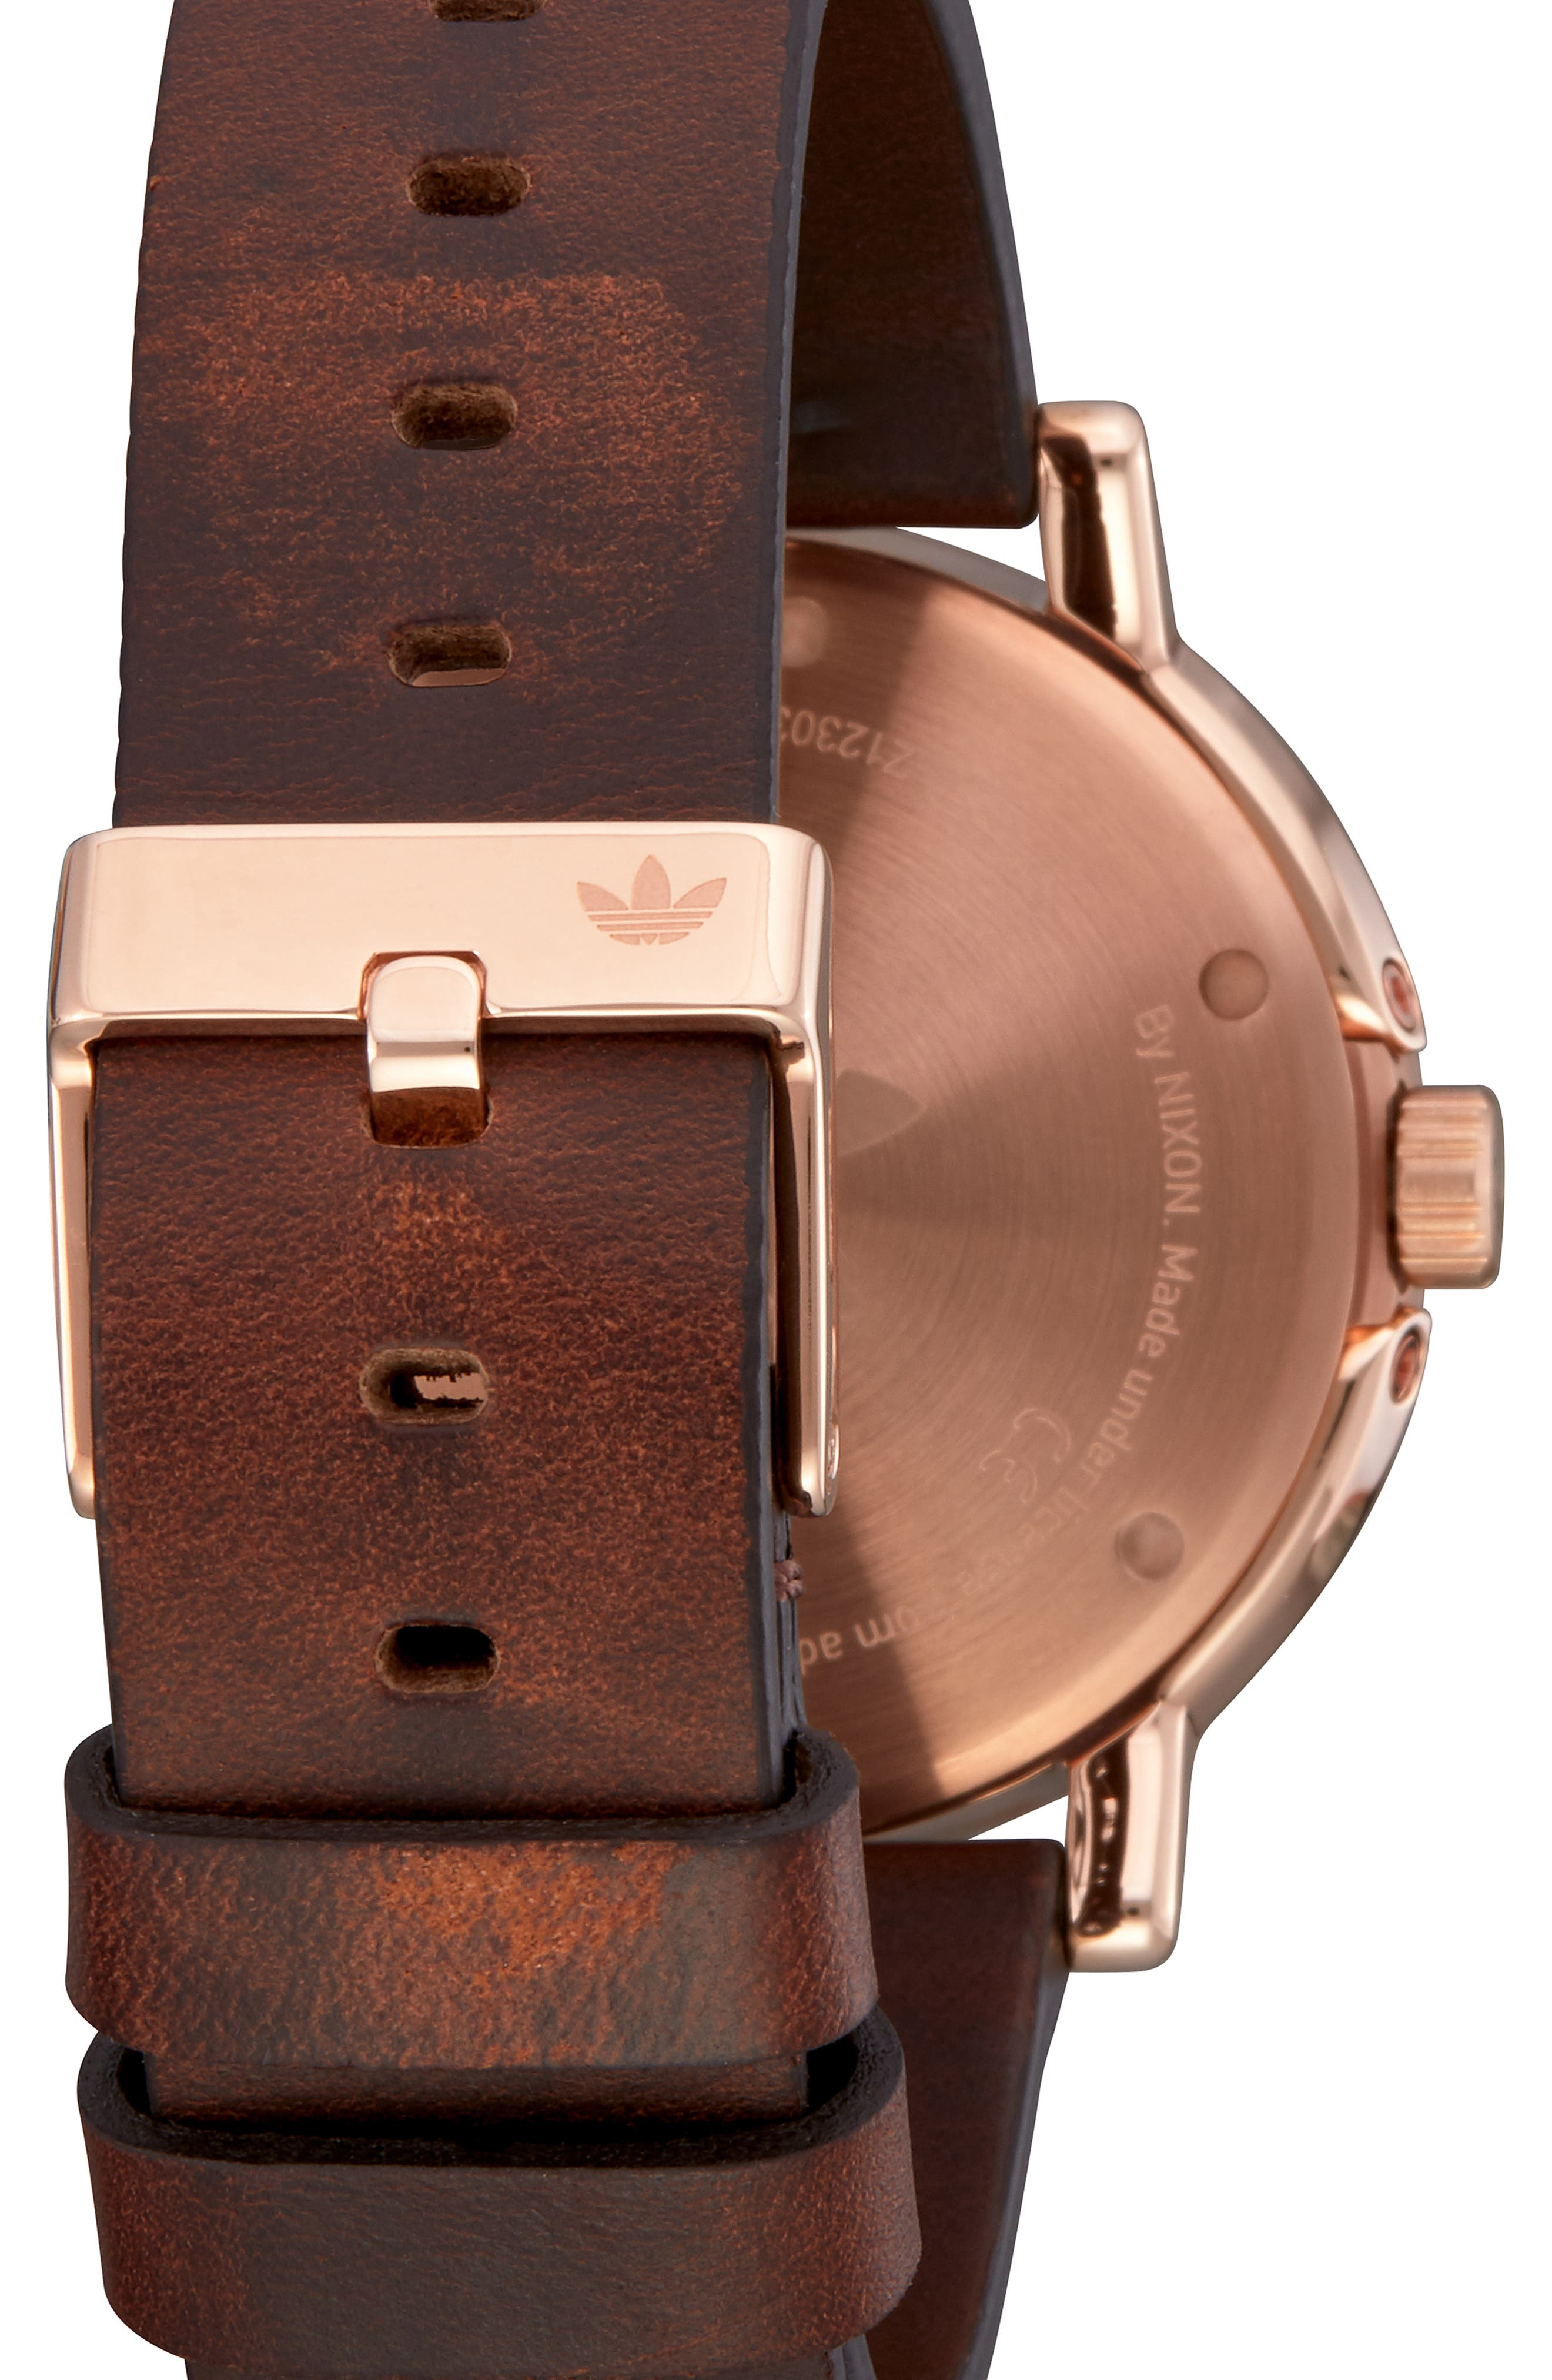 ADIDAS, District Leather Strap Watch, 40mm, Alternate thumbnail 2, color, BROWN/ OLIVE/ ROSE GOLD